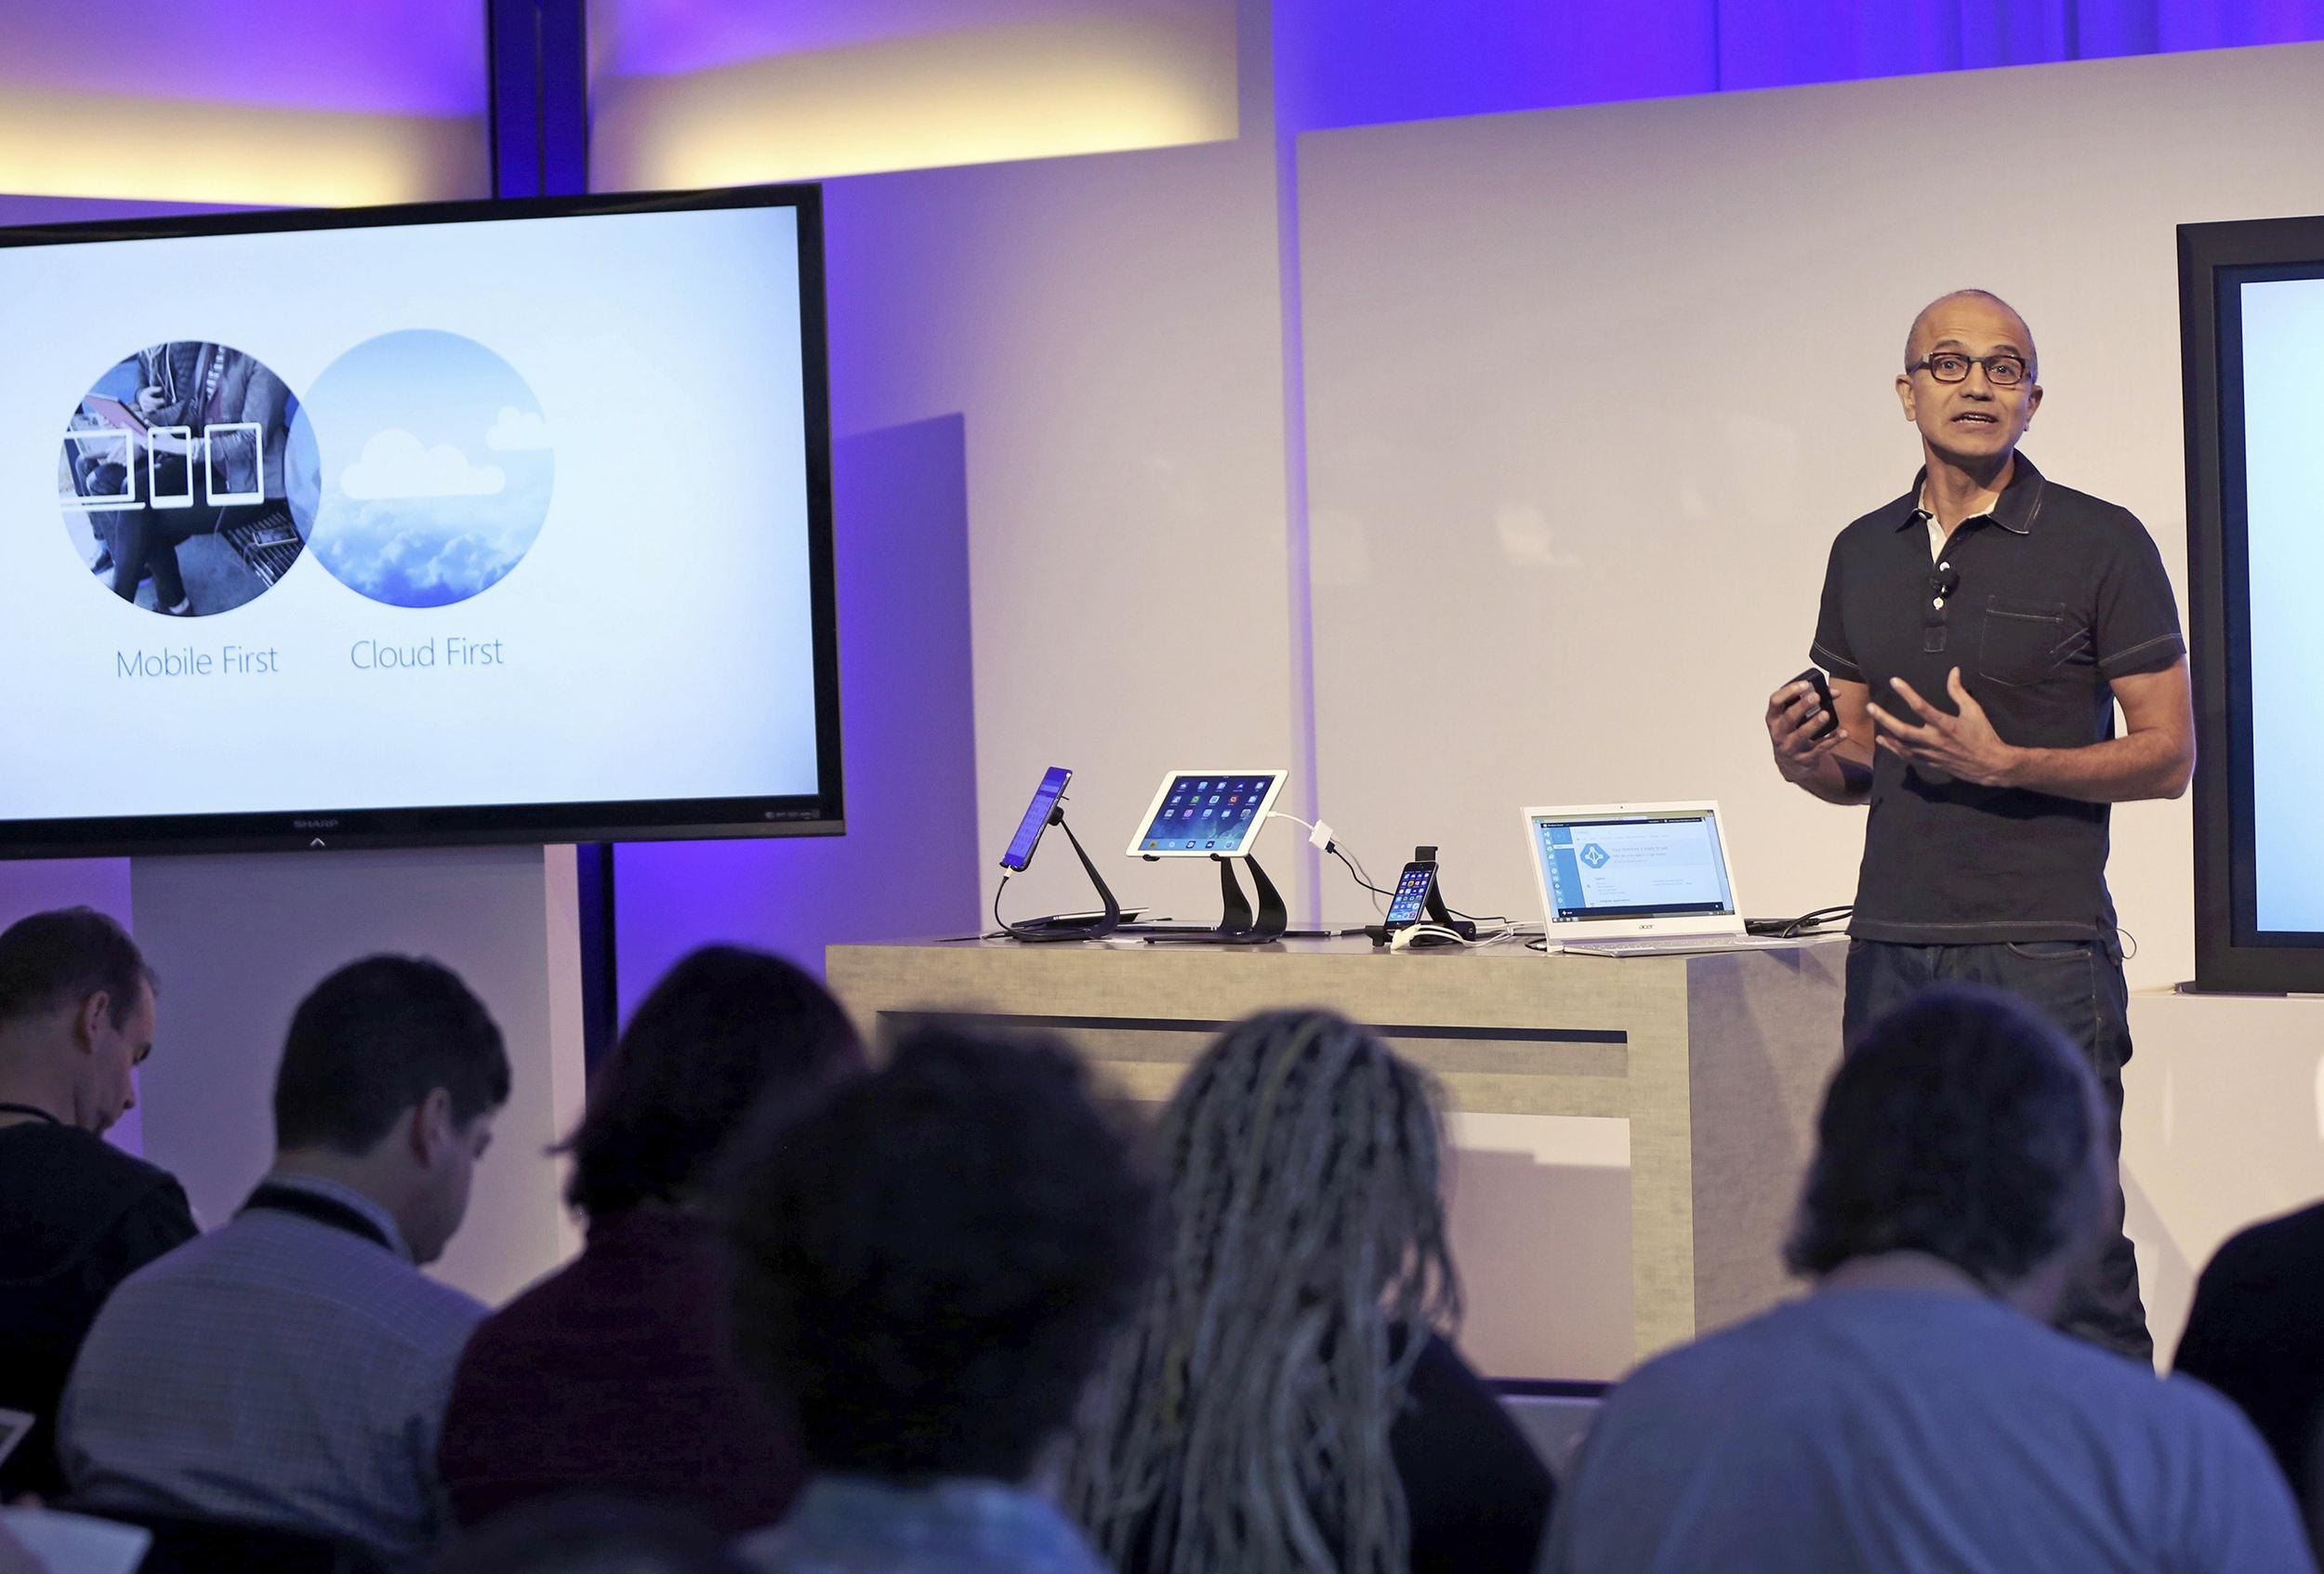 Image: Microsoft CEO Satya Nadella speaks at a Microsoft event in San Francisco